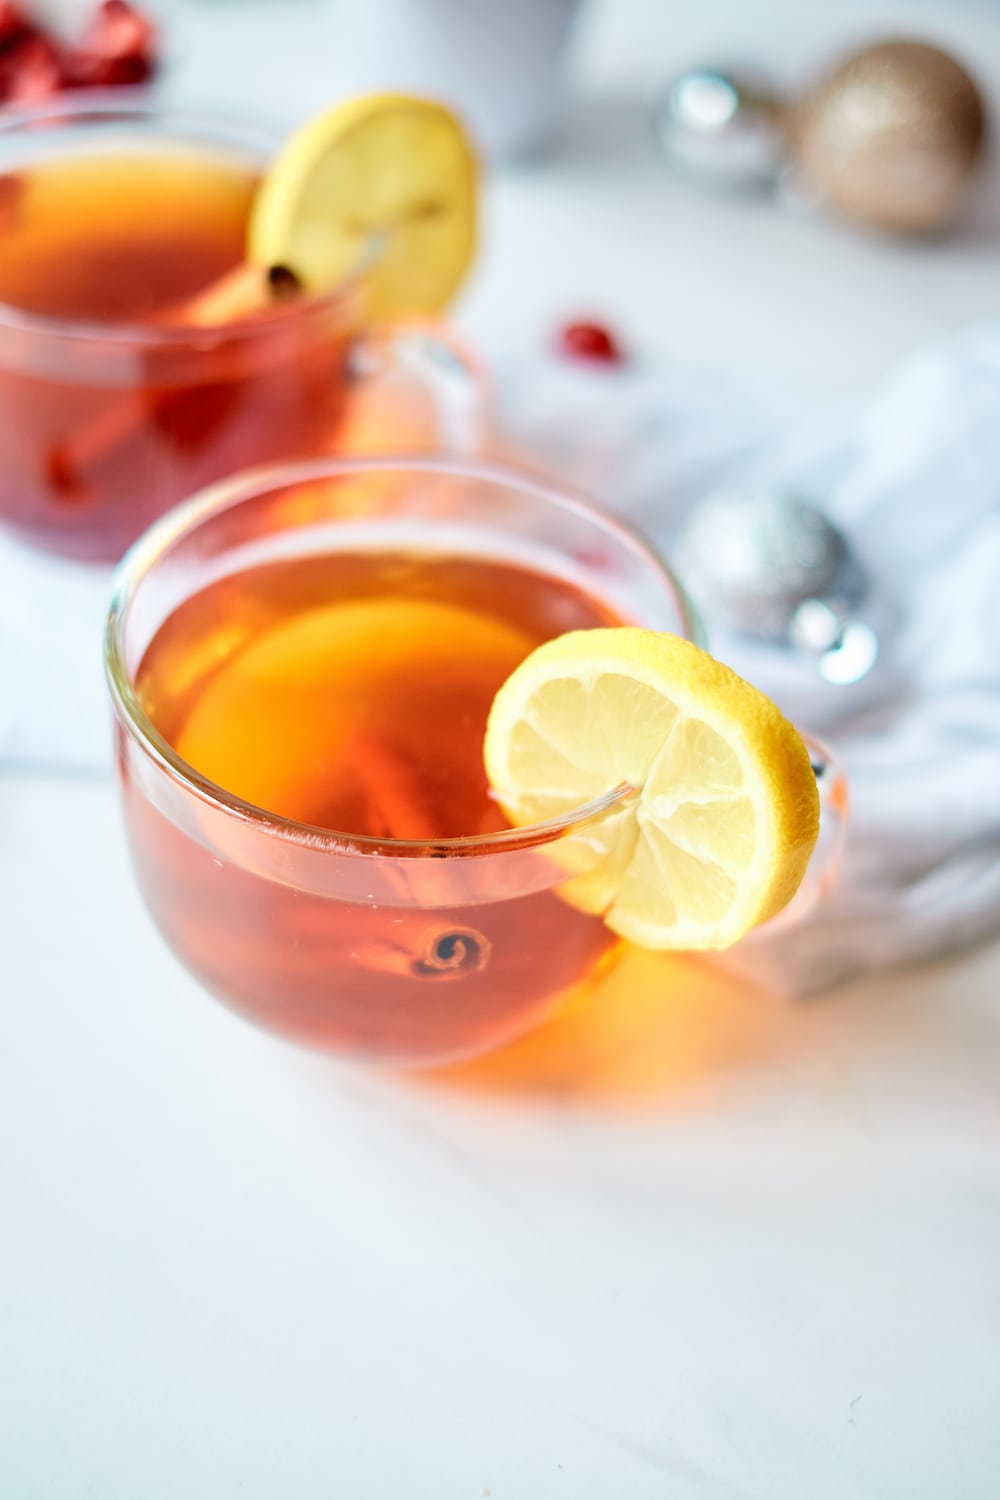 A clear mug of hot bourbon toddy with lemon on a table.